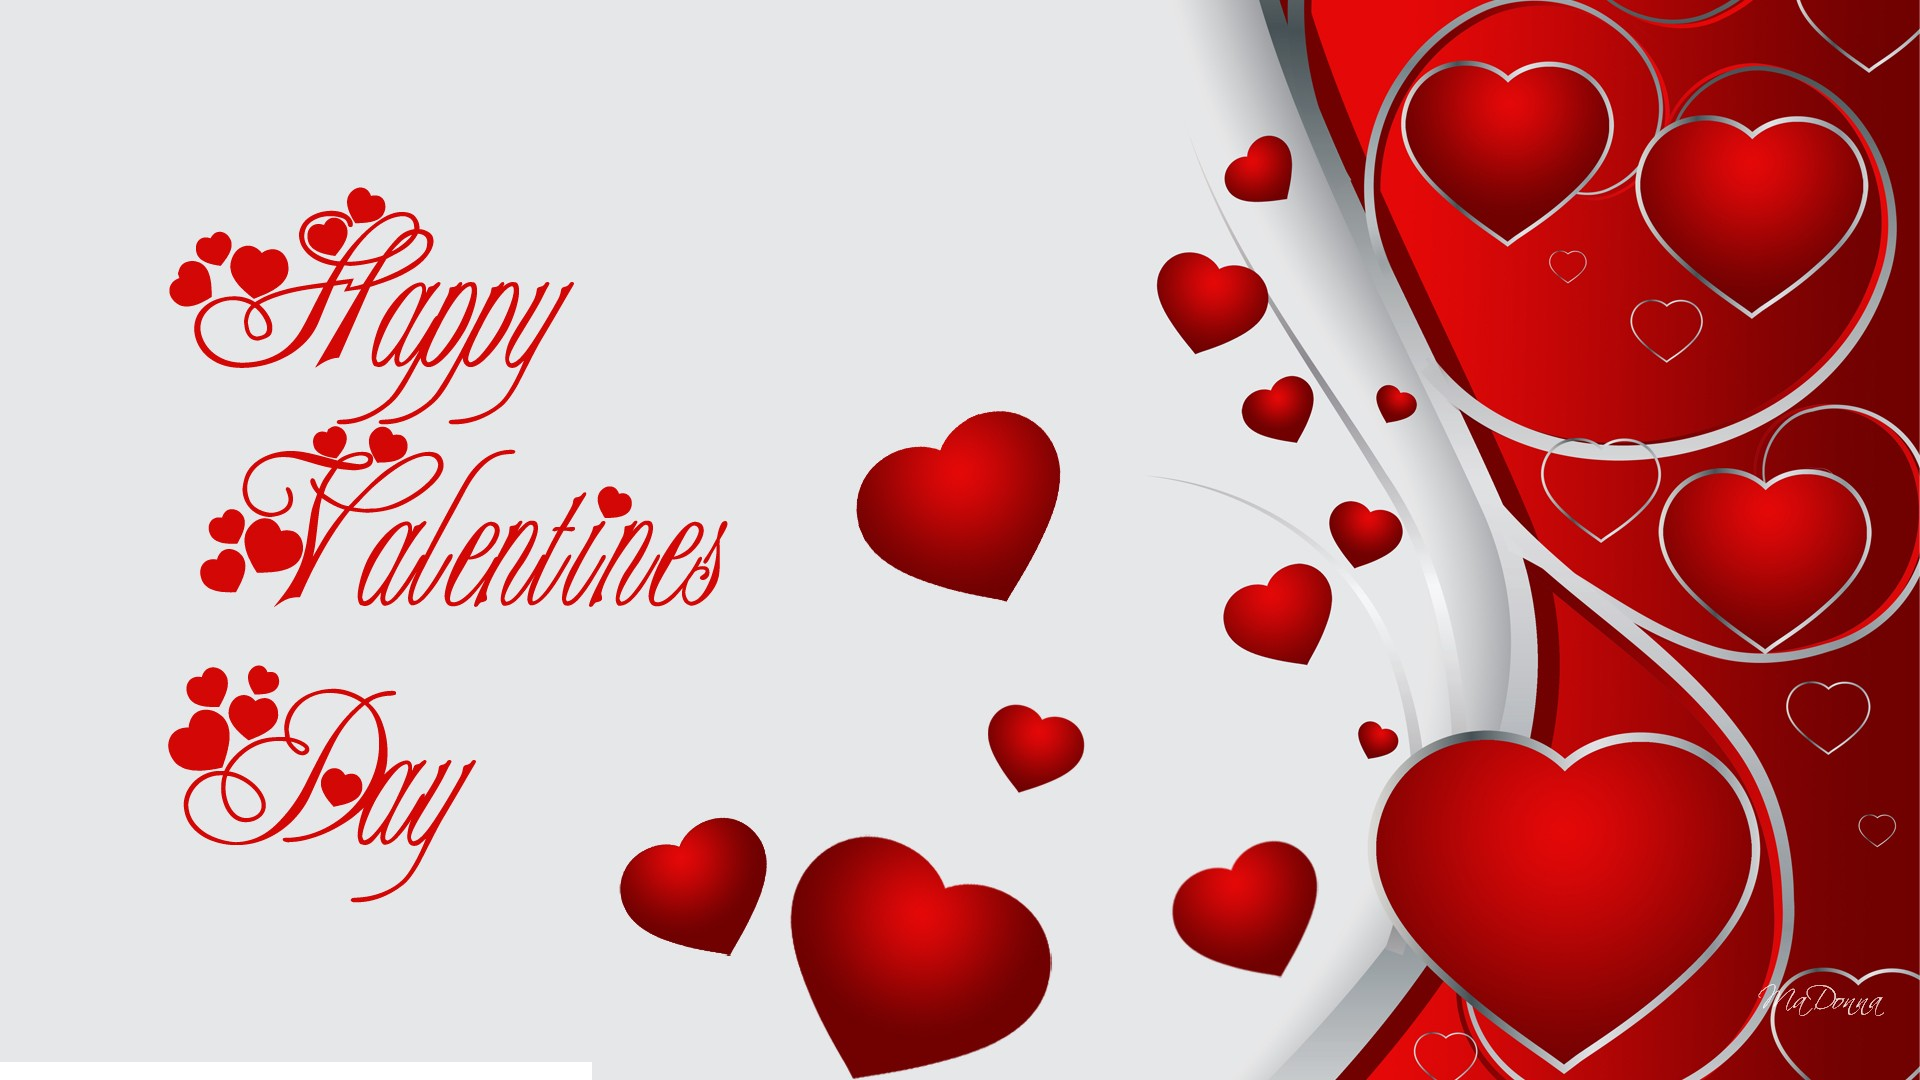 Happy-Valentines-Day-wallpaper-hd-2017-03